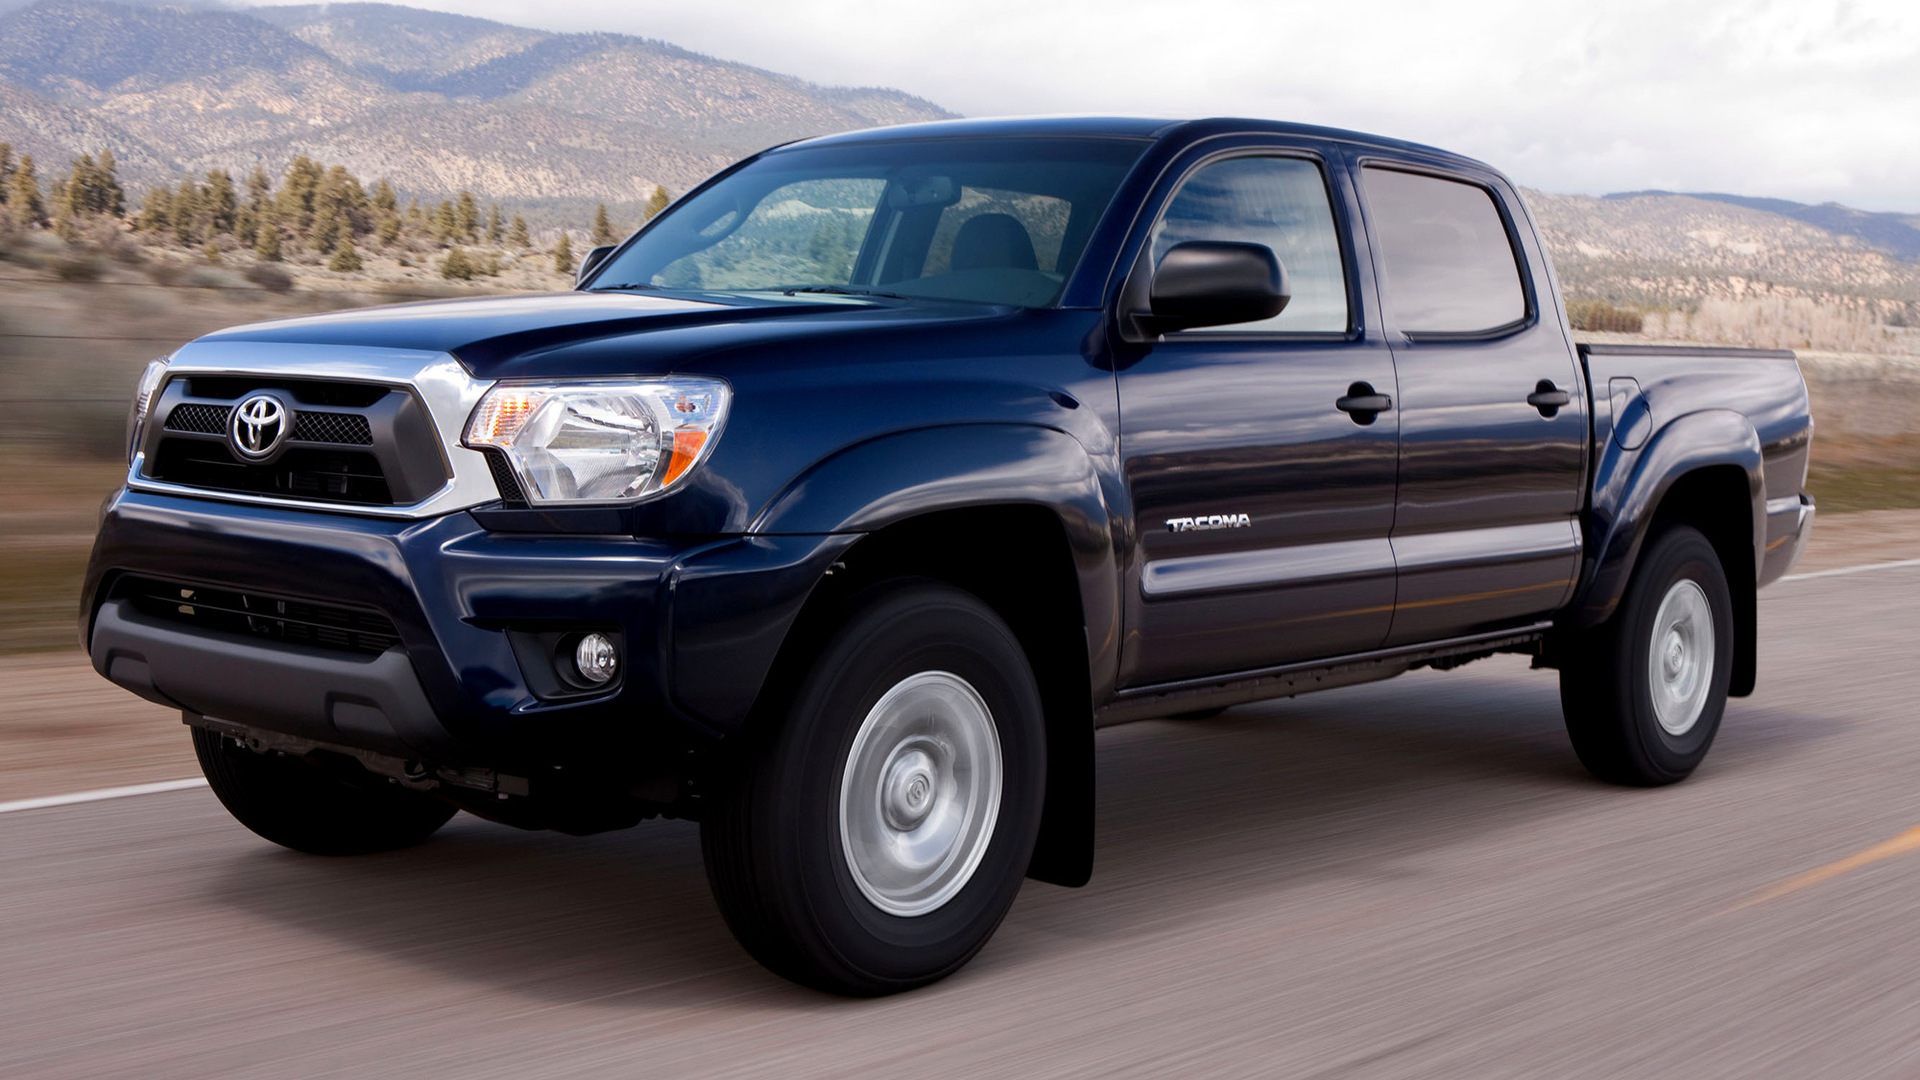 Tacoma Double Cab >> 2012 Toyota Tacoma SR5 Double Cab - Wallpapers and HD ...